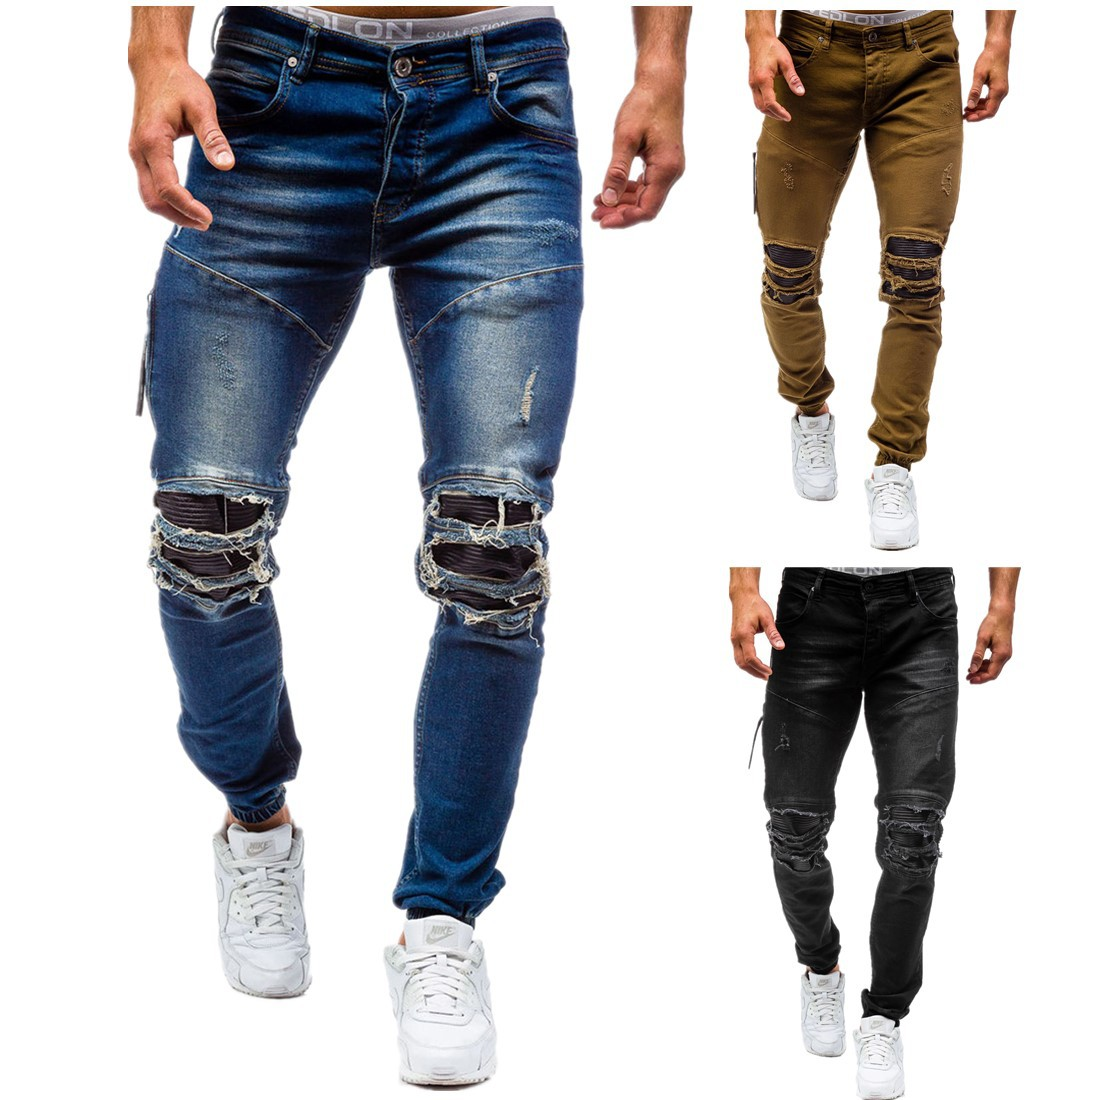 82ae0be1408 2019 2017 New Men S Jeans Ripped Beggar Holes Pants Korean Style ...